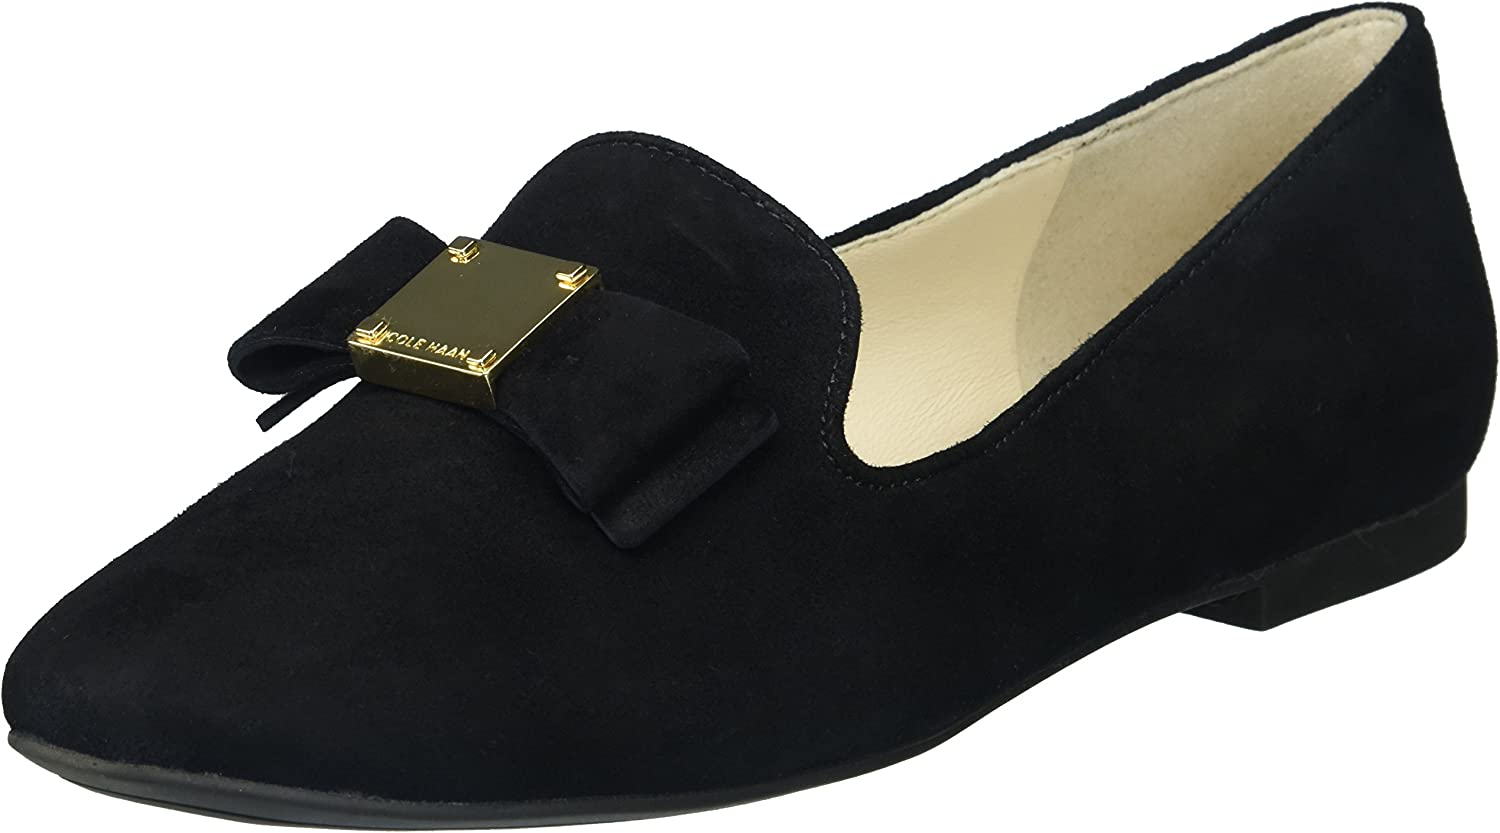 Cole Haan Women's Tali Bow Loafer Loafers